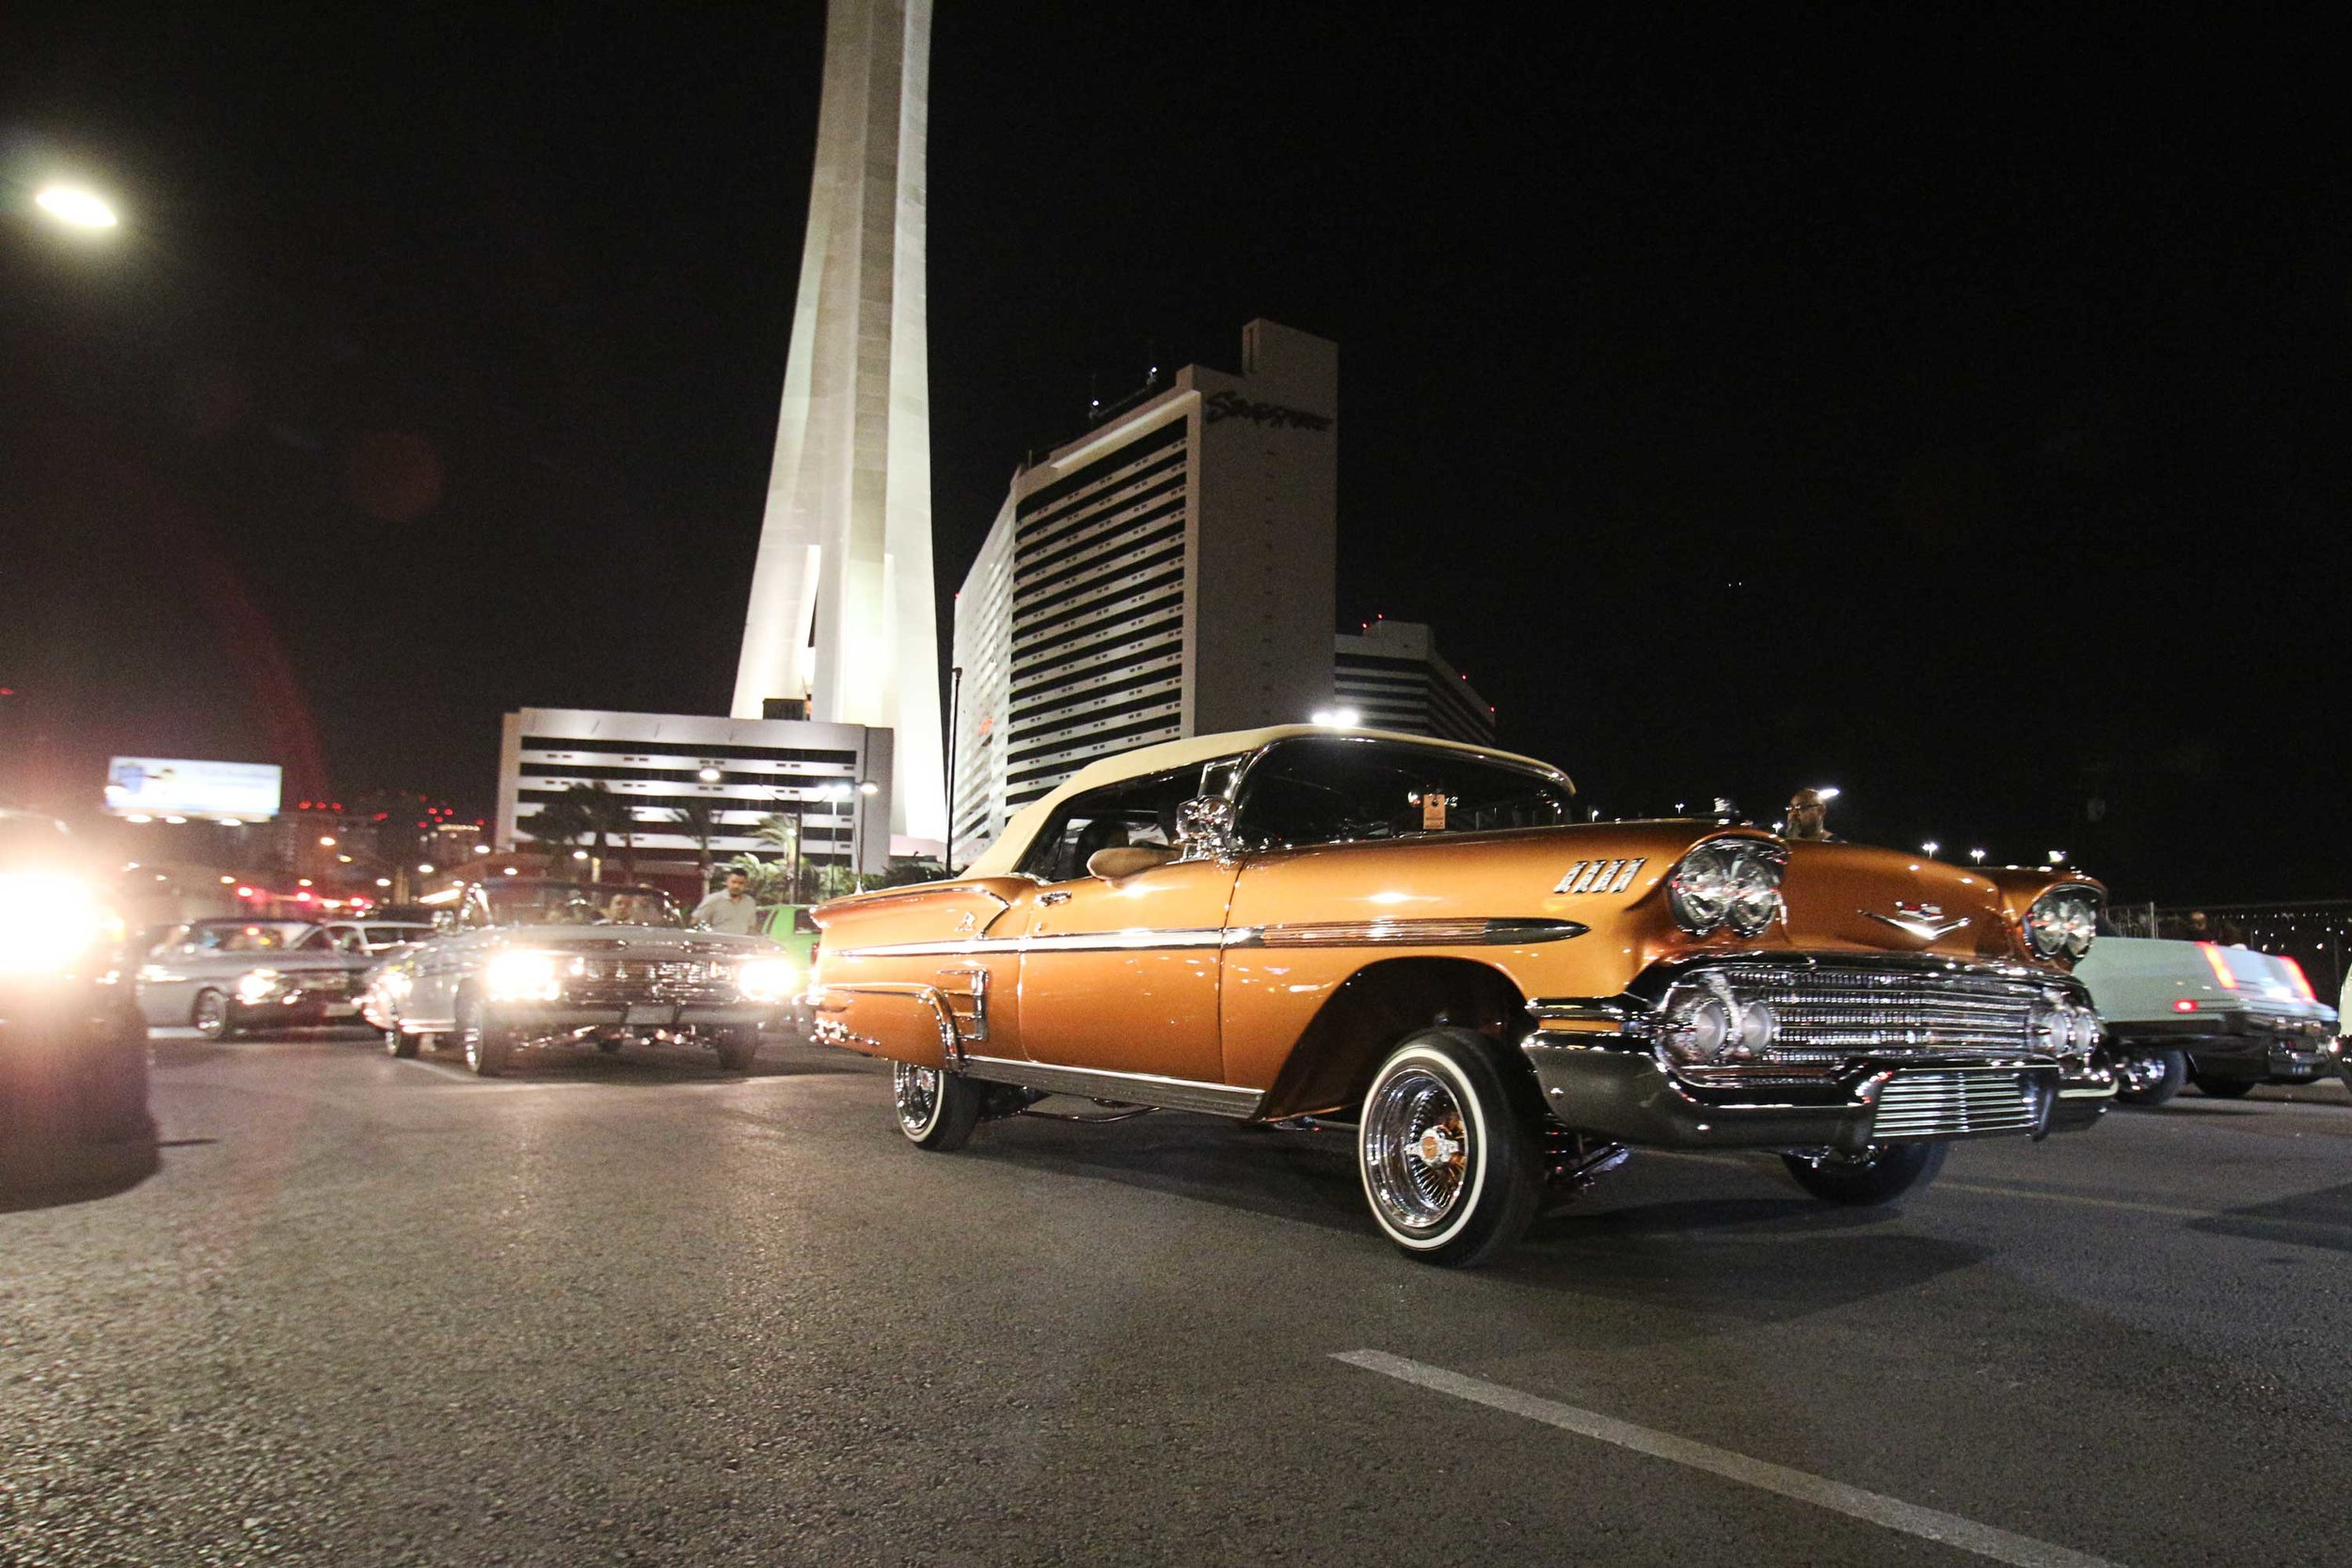 Lowrider Super Show - After cruise down LV BLVD